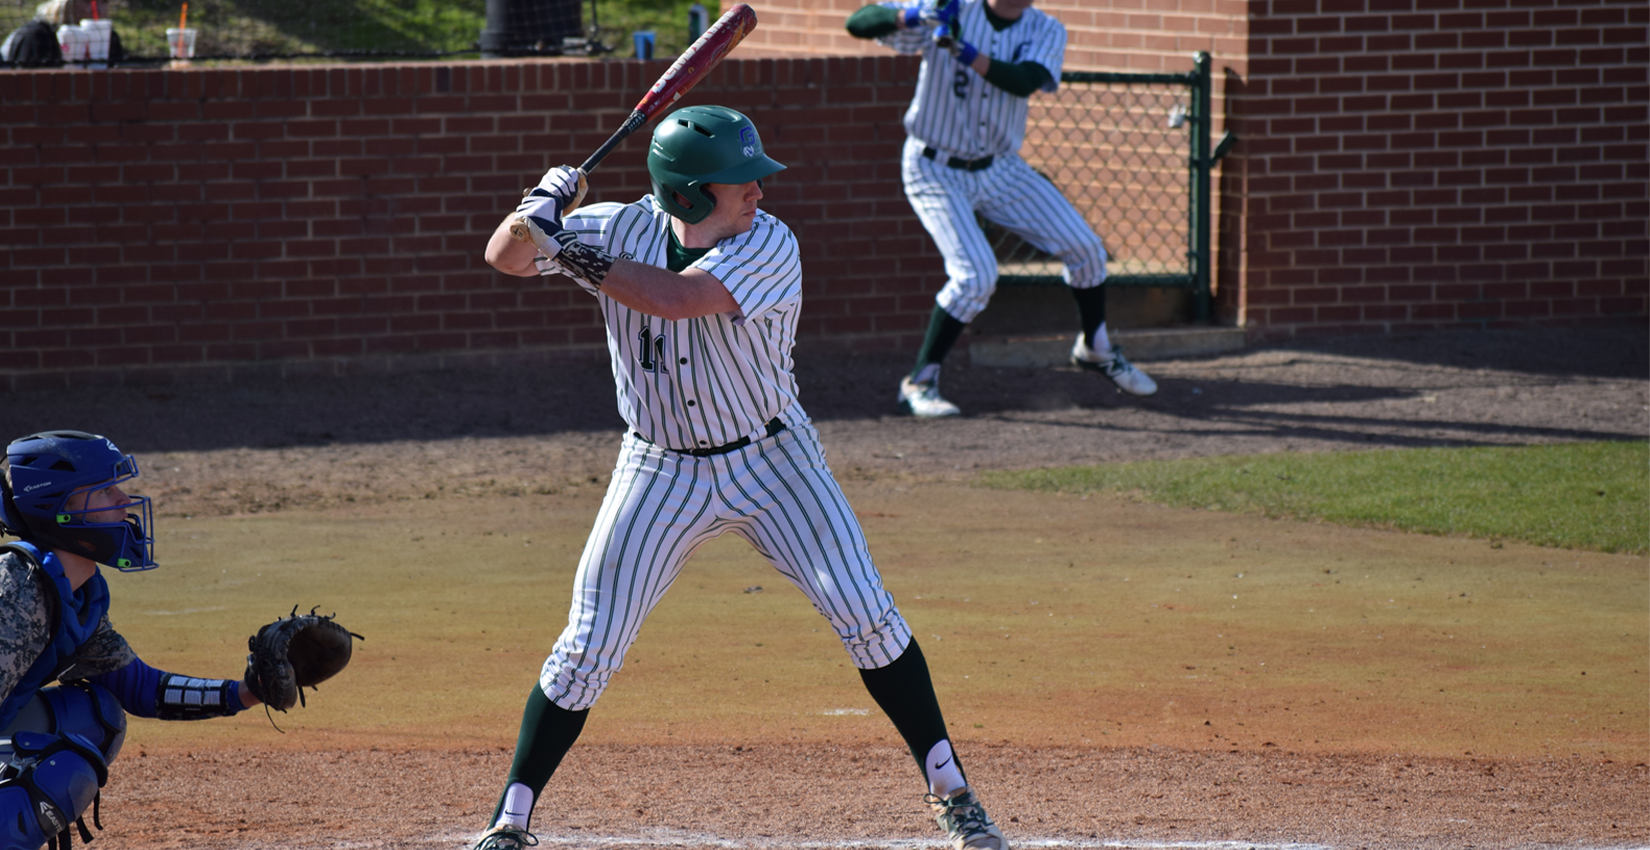 Georgia College Baseball Completes Sweep Over Ohio Valley, 7-4